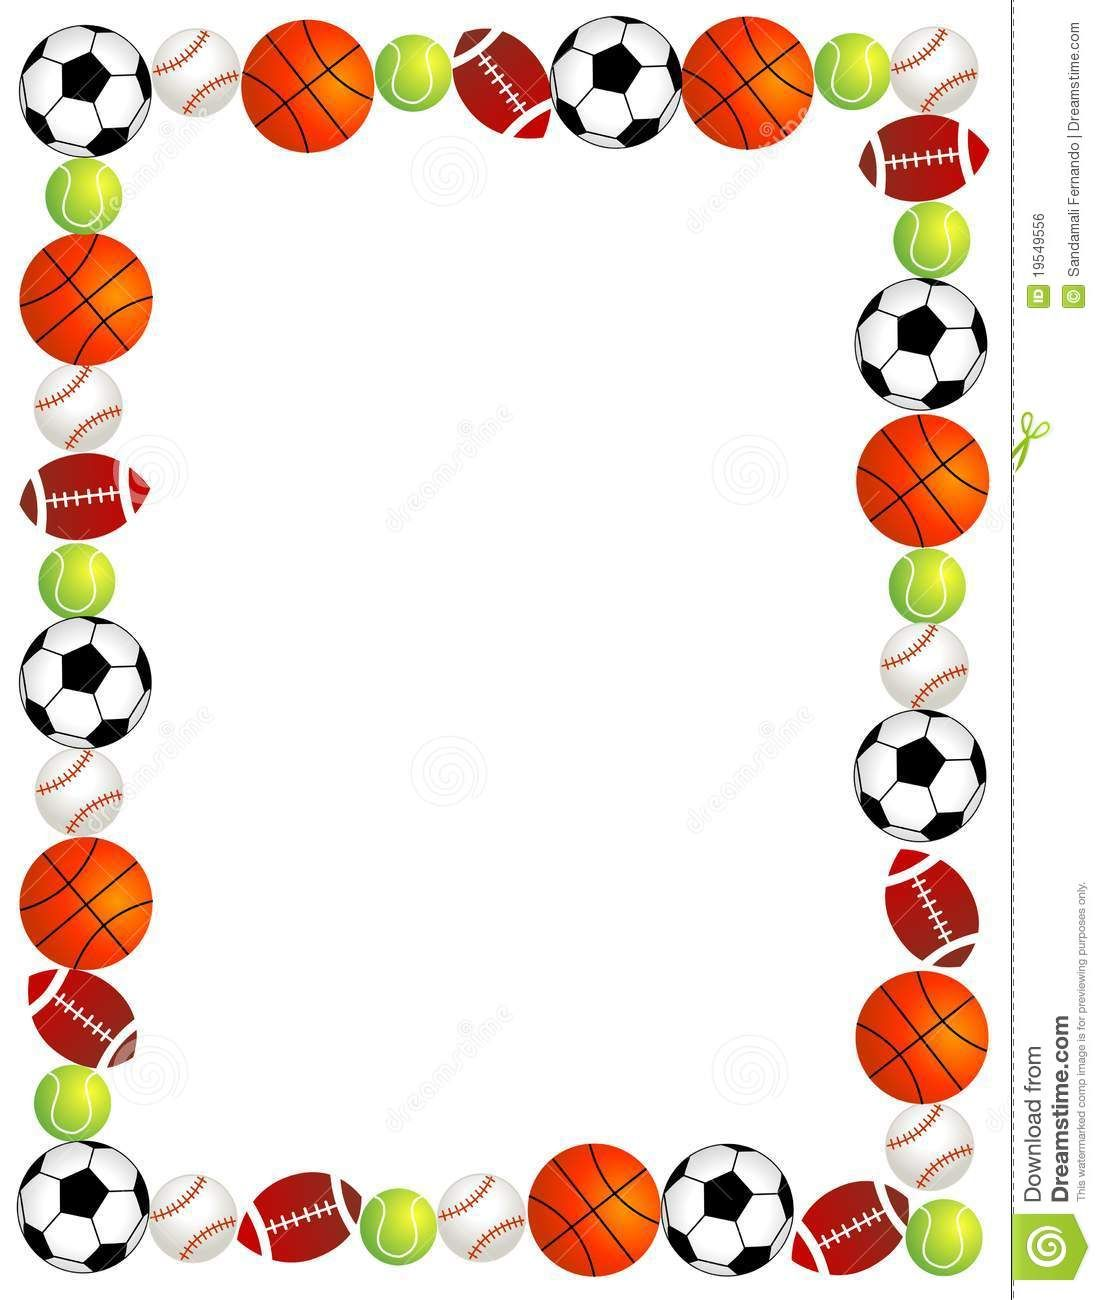 free sports balls scrapbook backgrounds - Google Search | tarjetas ...